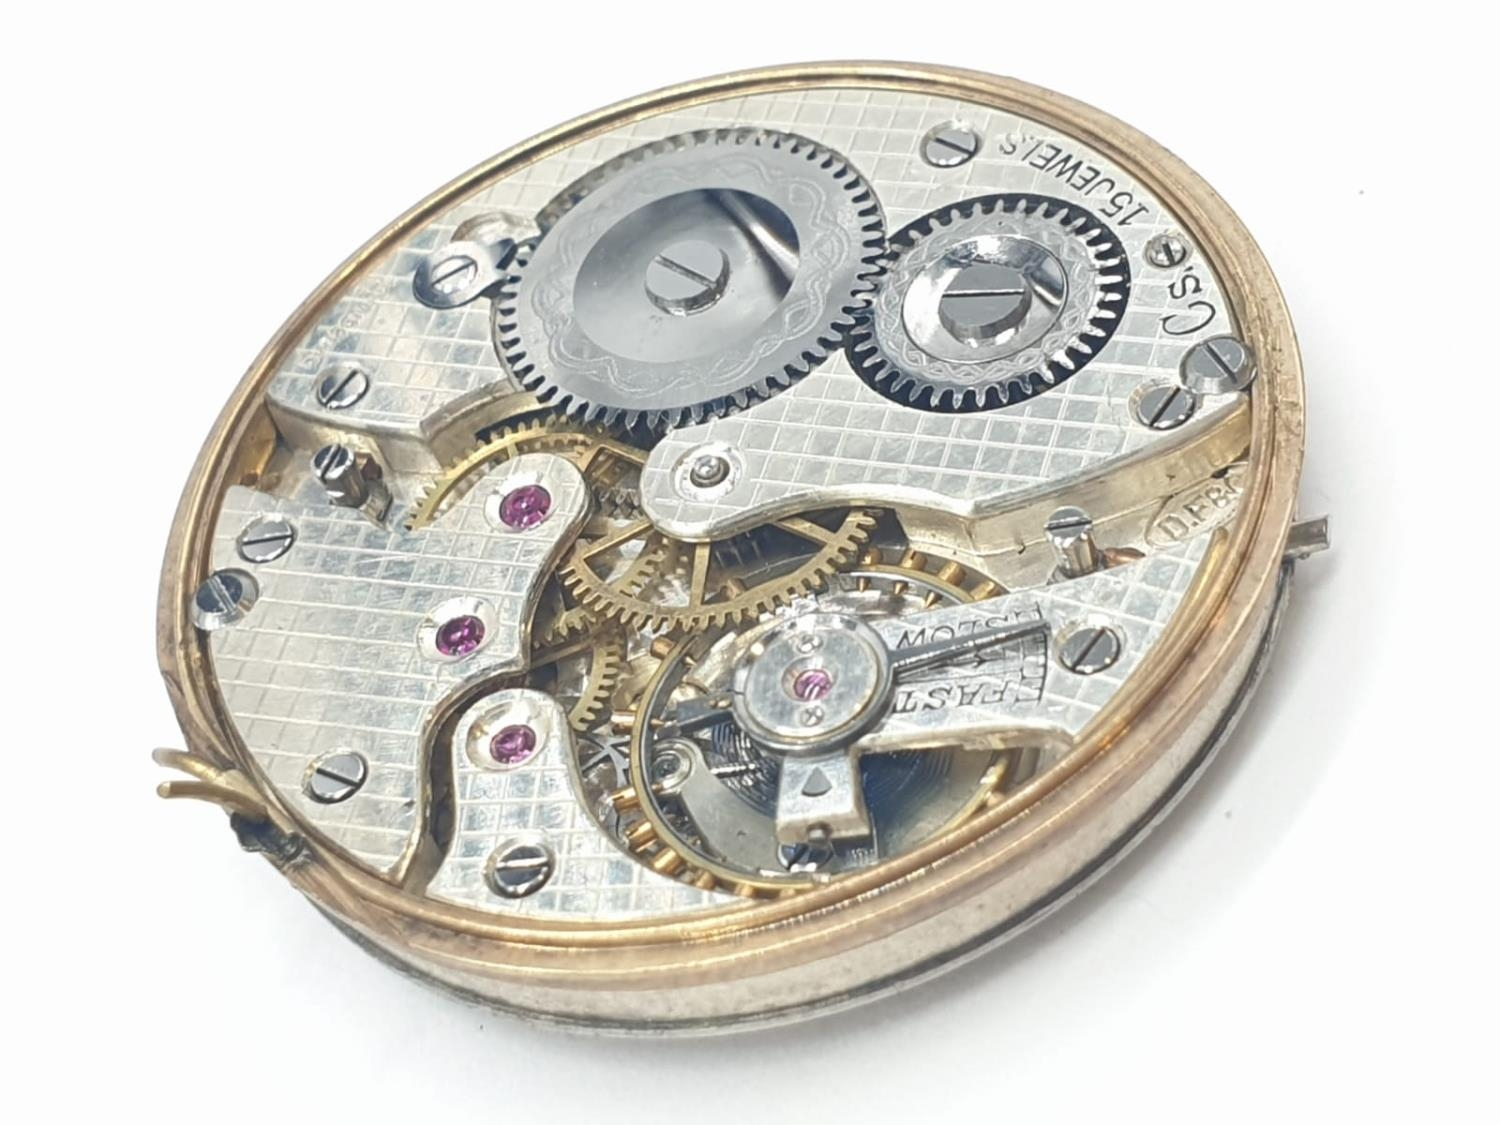 3 x Pocket Watch Movements. 3.0 , 3.5 and 4.5 cm. - Image 10 of 10